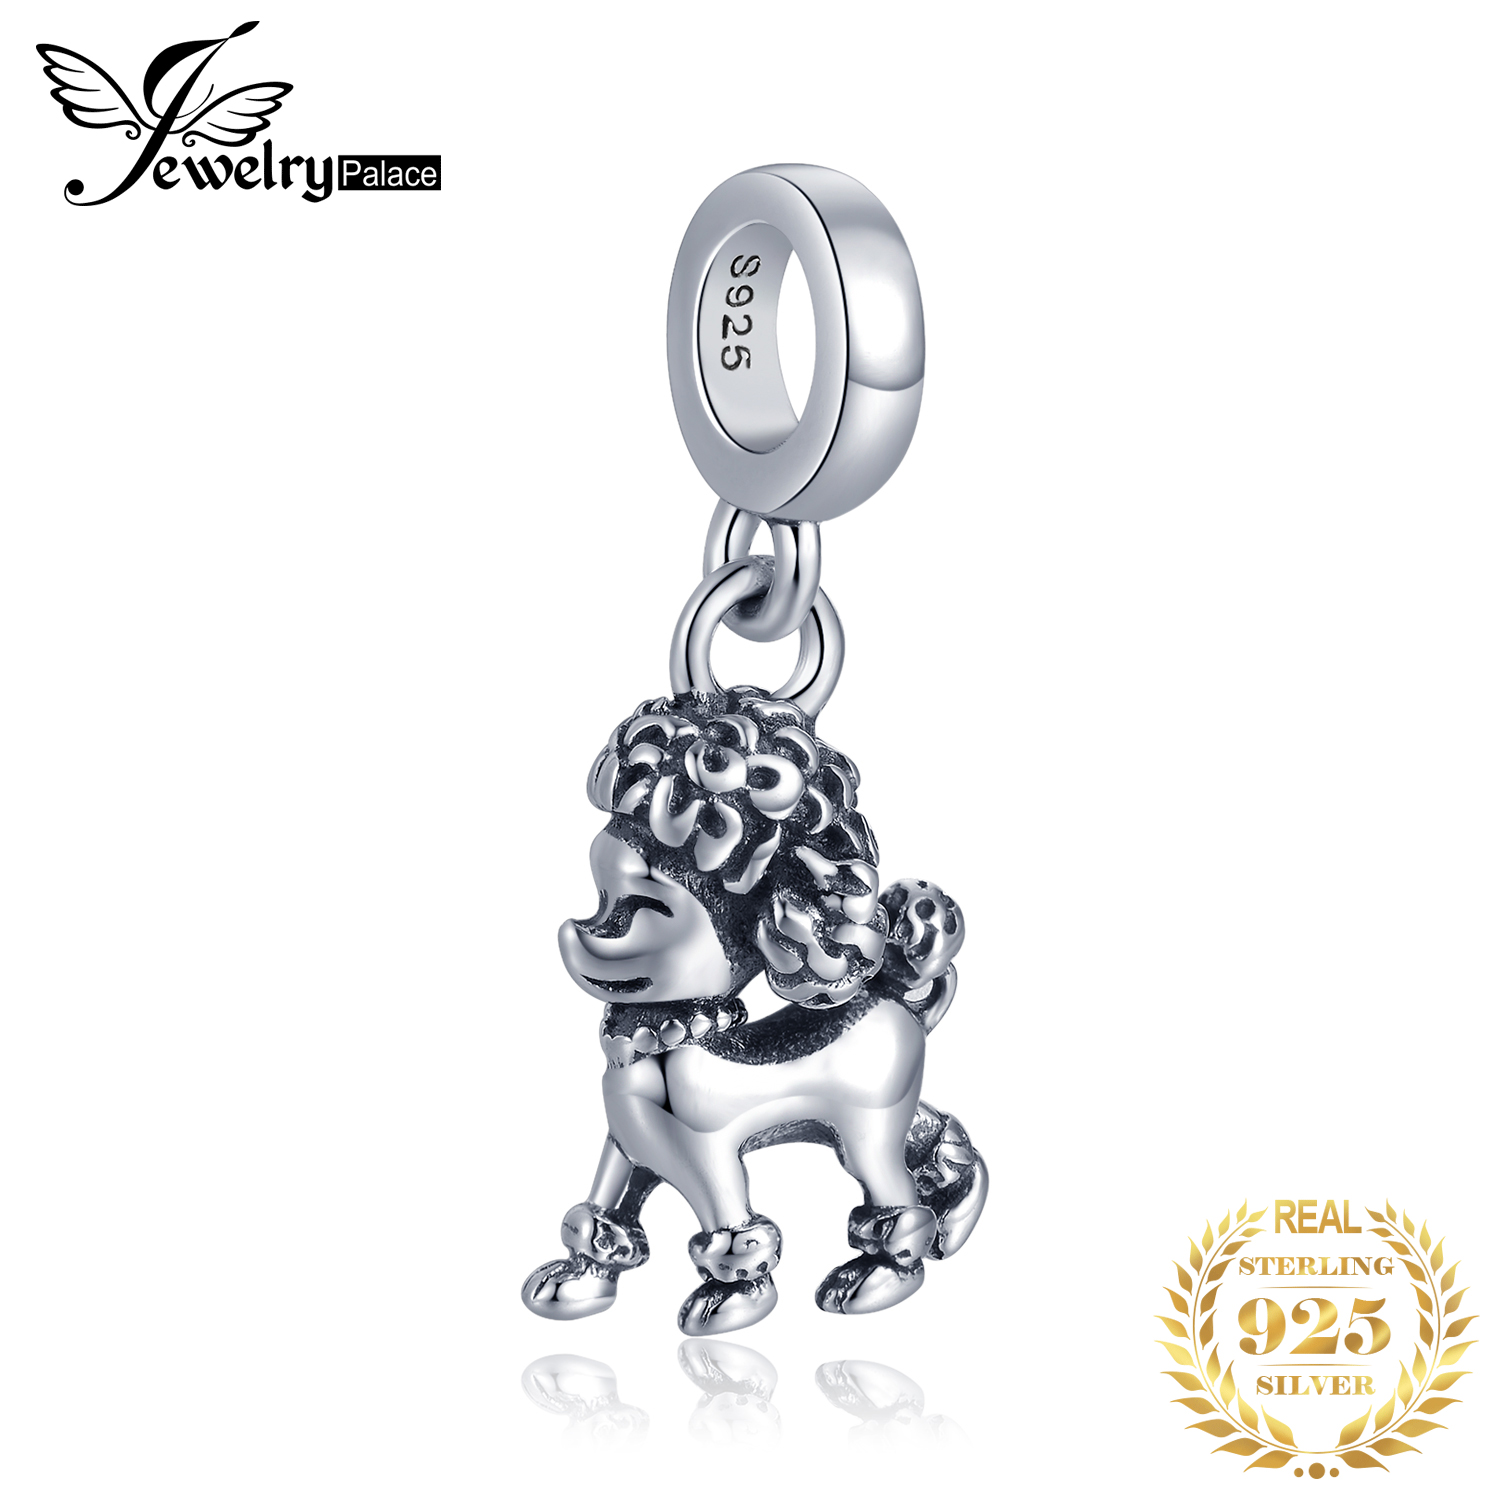 JewelryPalace 925 Sterling Silver Poodle Dog Beads Charms Silver 925 Original Fit Bracelet Silver 925 original Jewelry Making